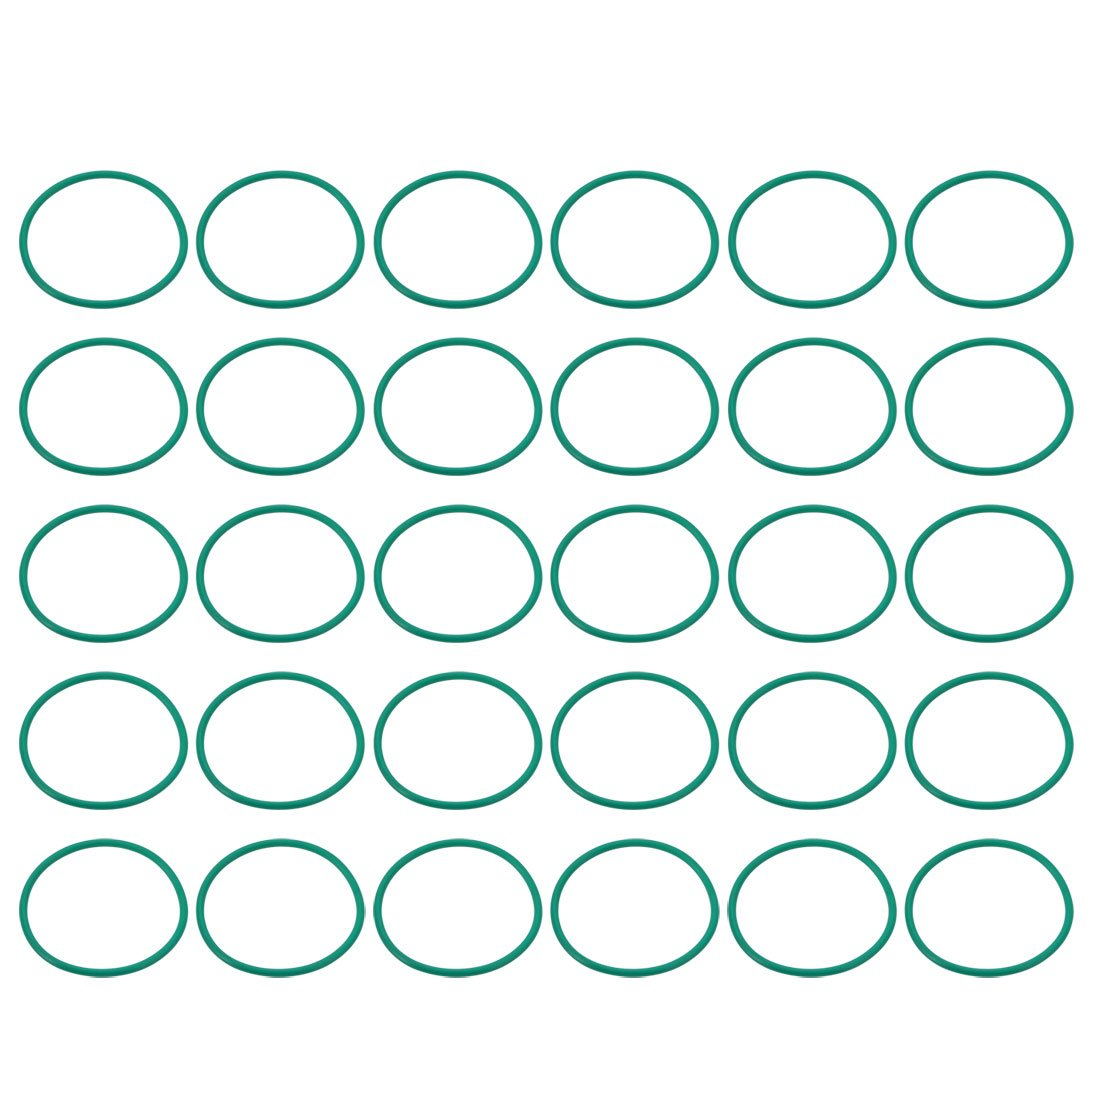 uxcell 30pcs Green 29mm Outer Dia 1.5mm Thickness Sealing Ring O-Shape Rubber Grommet